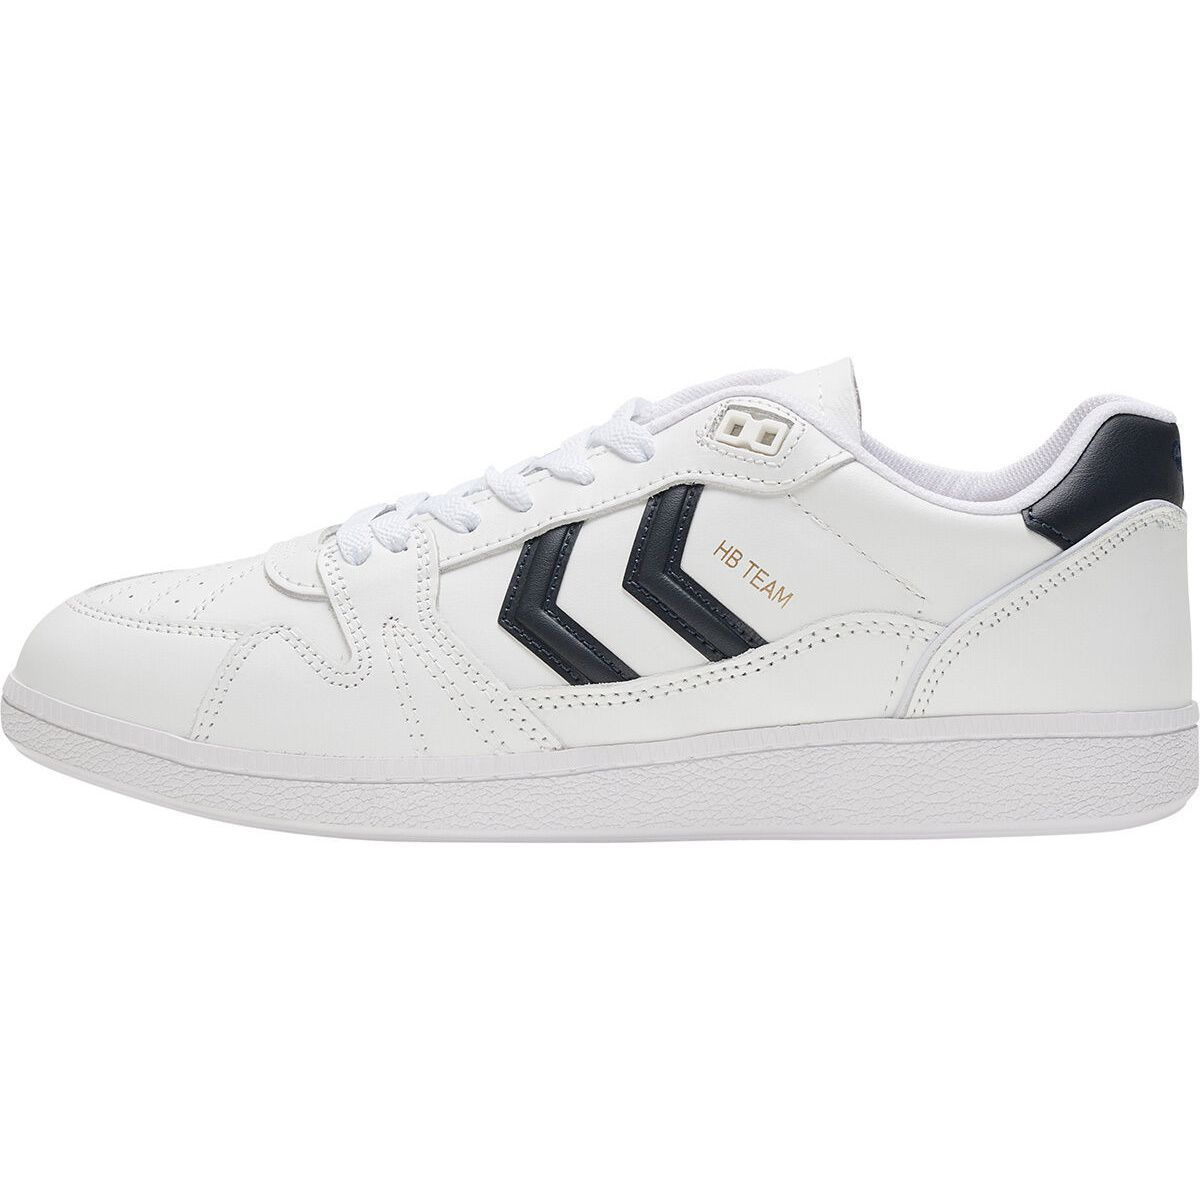 Hummel homme hb team leather blanc1284101_3